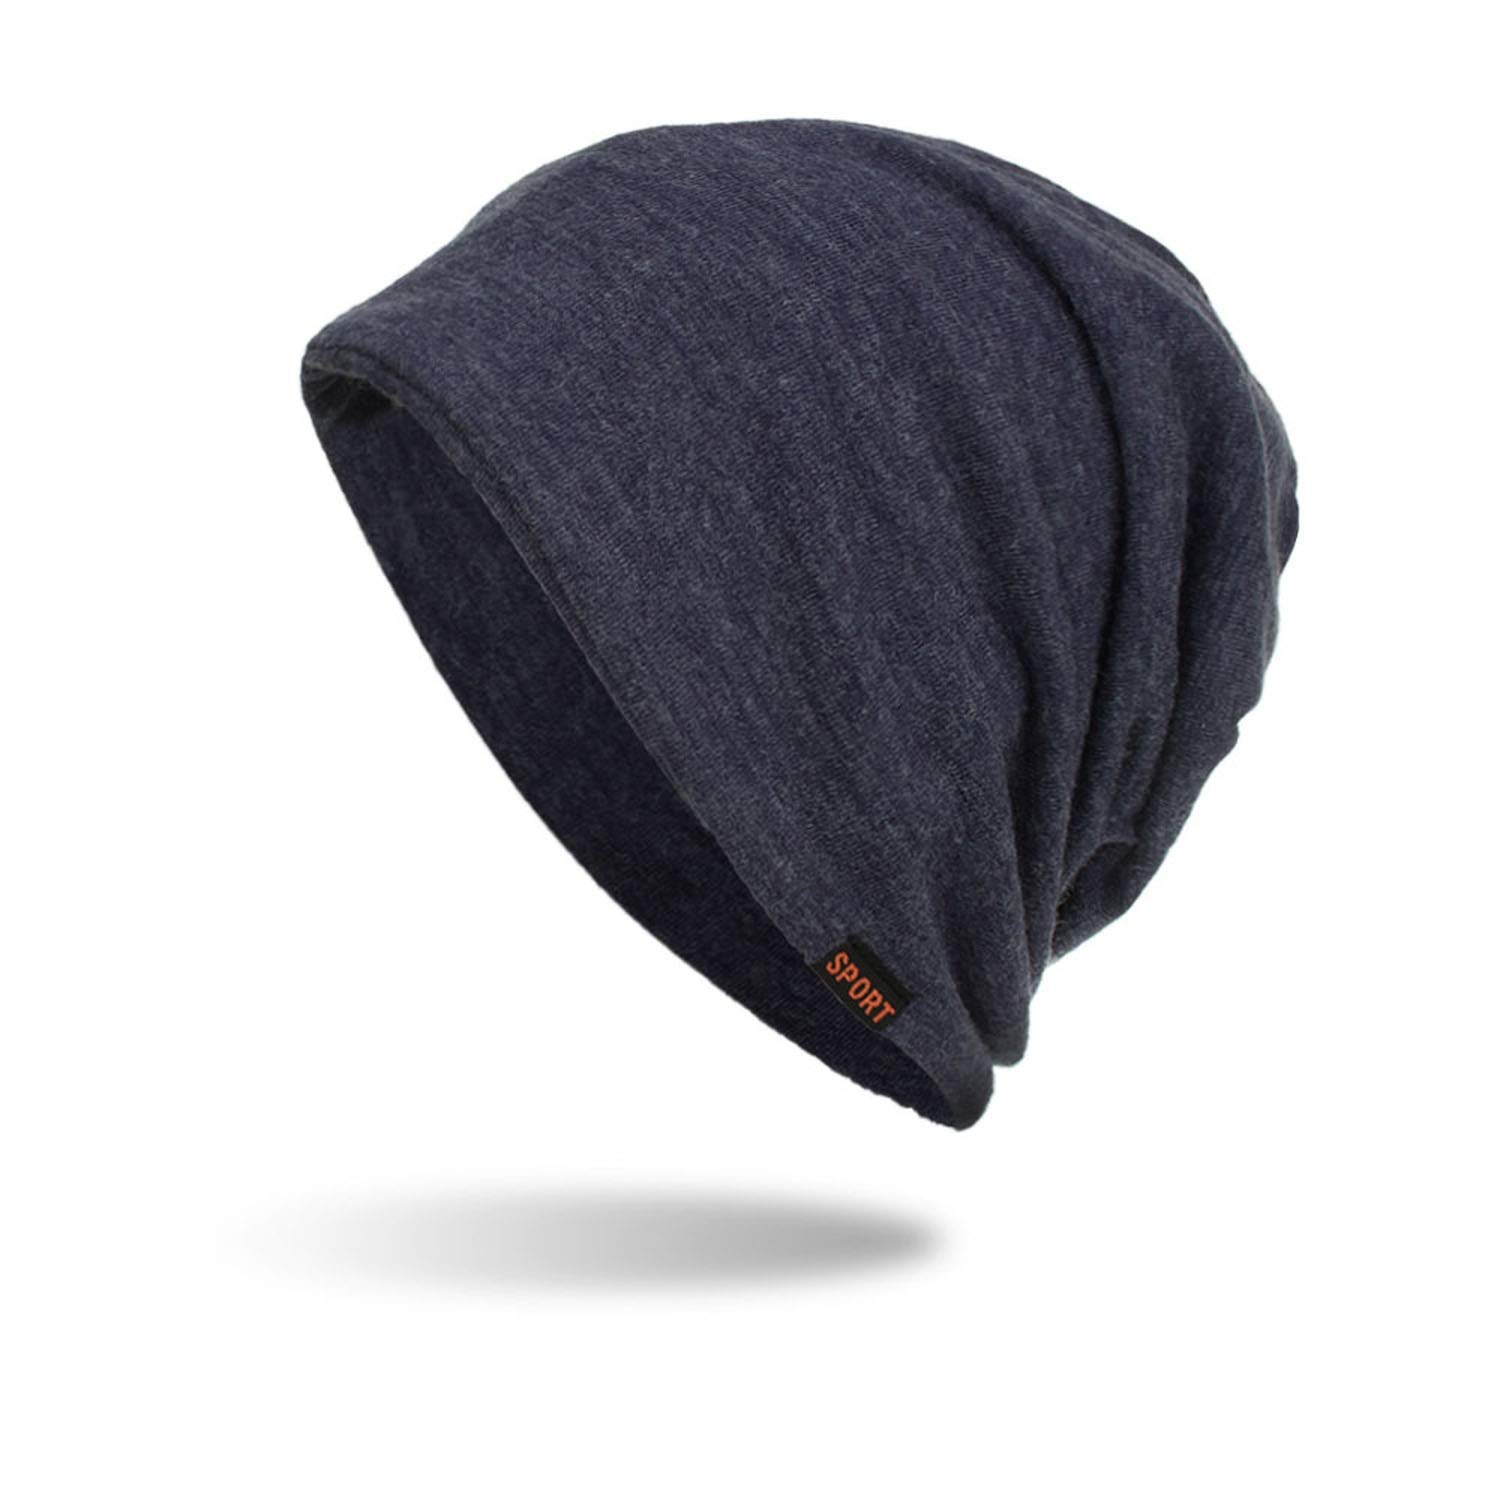 a1eb5078699 Amazon.com  Lovely-Shop Winter Beanies Hat Unisex Solid Color Sport Warm  Soft Skull Knitting Cap Hats Touca Gorro Caps